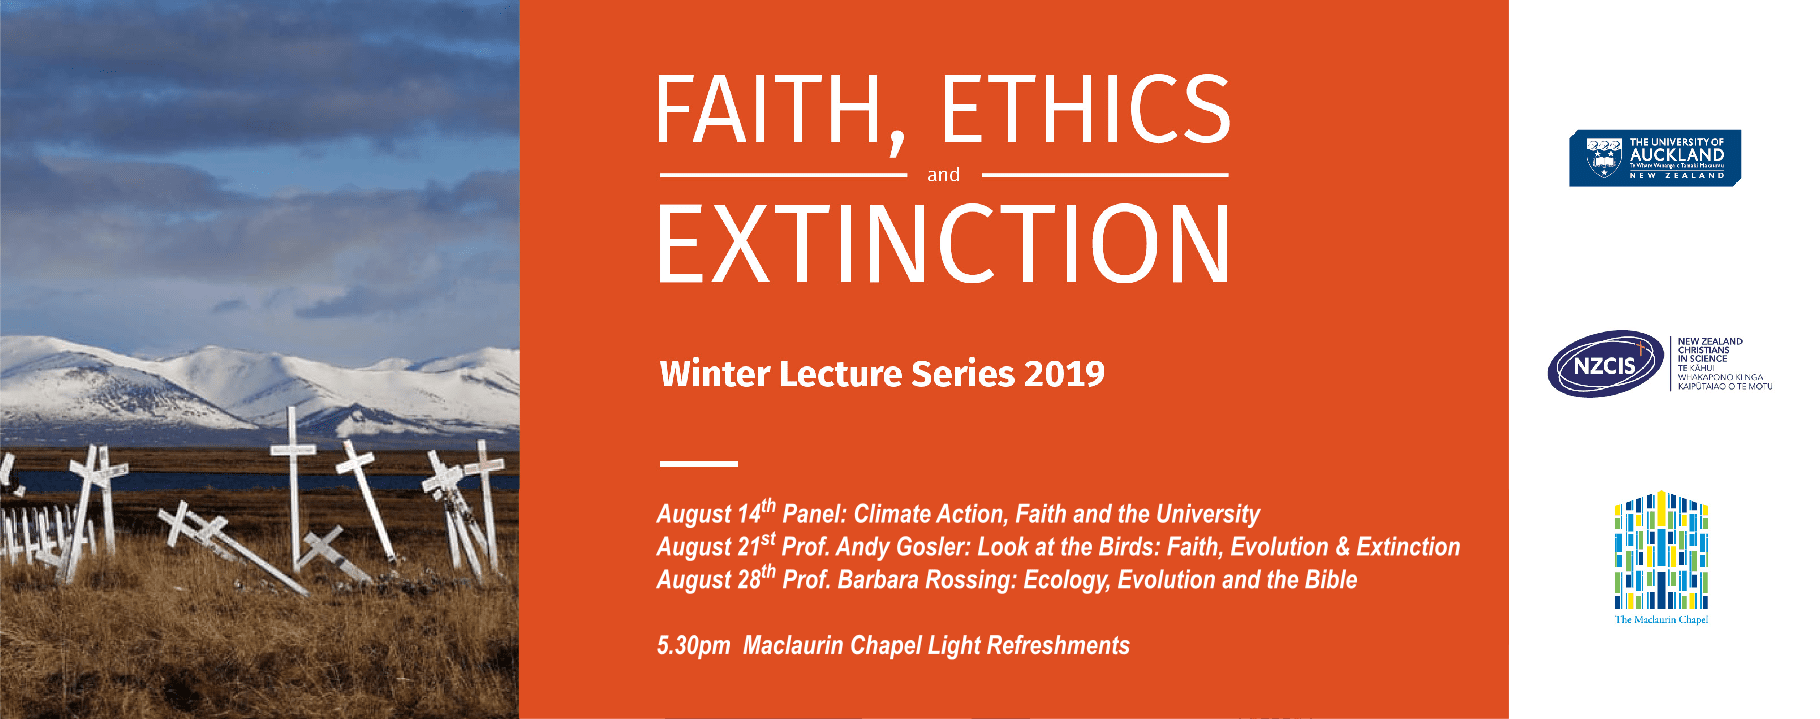 WINTER LECTURES